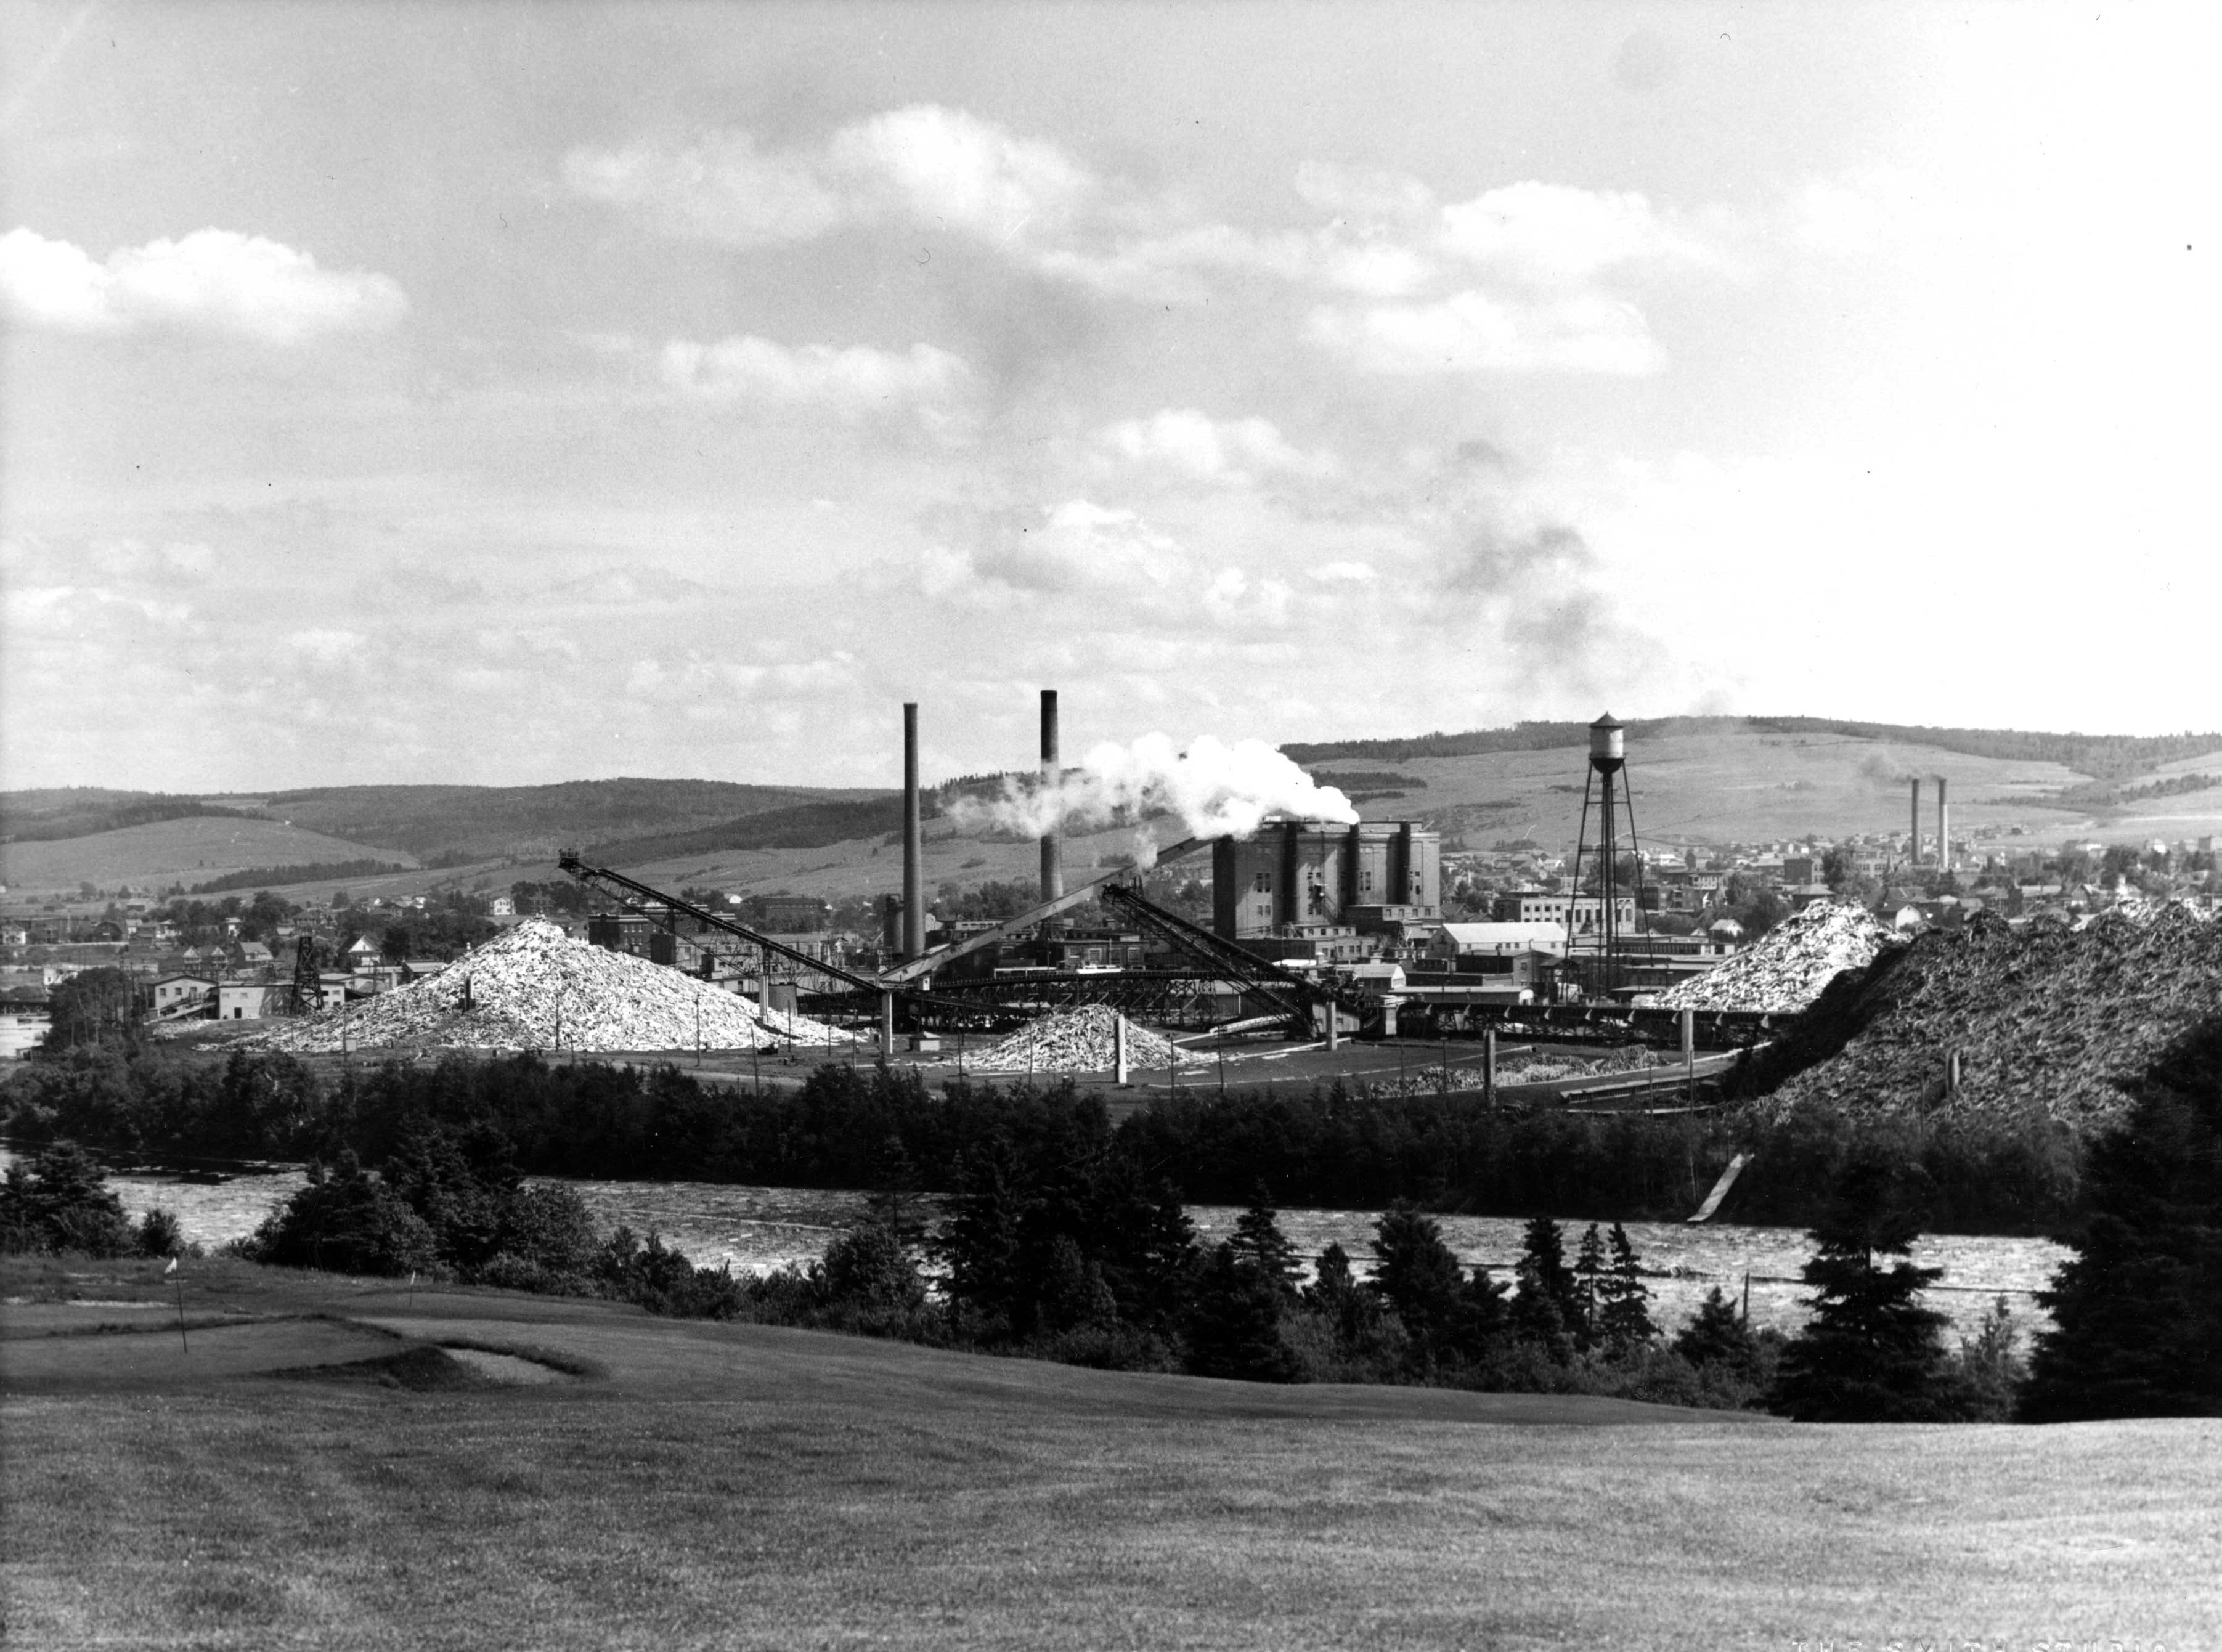 economic history of new brunswick Several decades of economic stagnation reduced new brunswick to a standard of living much lower than the national average national policies served to increase the disparity, as the tariff created and maintained a manufacturing sector in central canada.